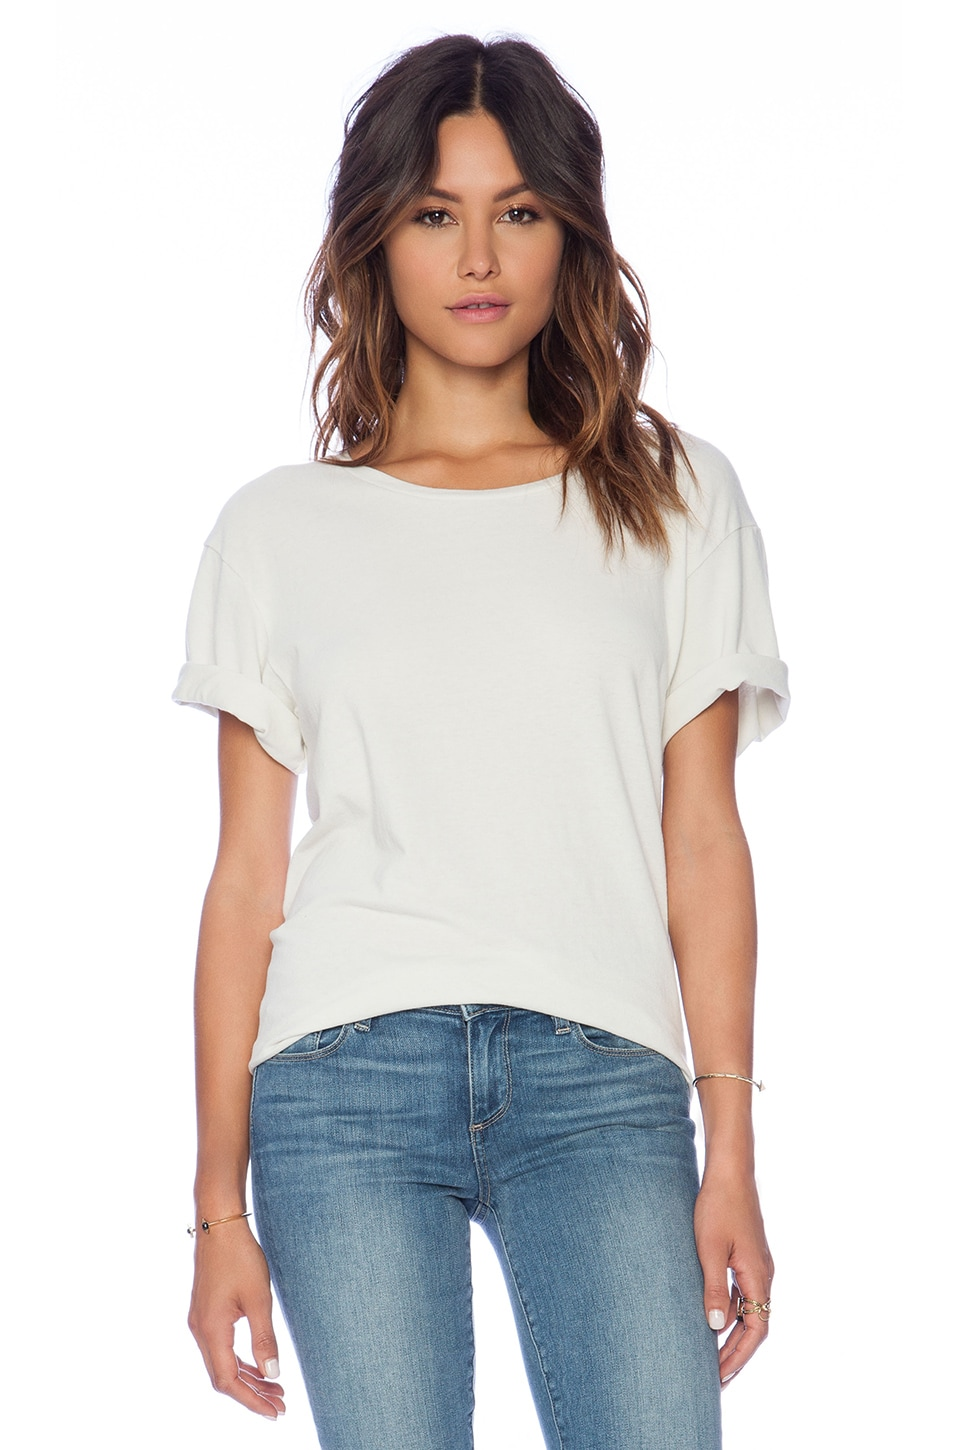 James Perse Oversize Heavy Tee in Tusk